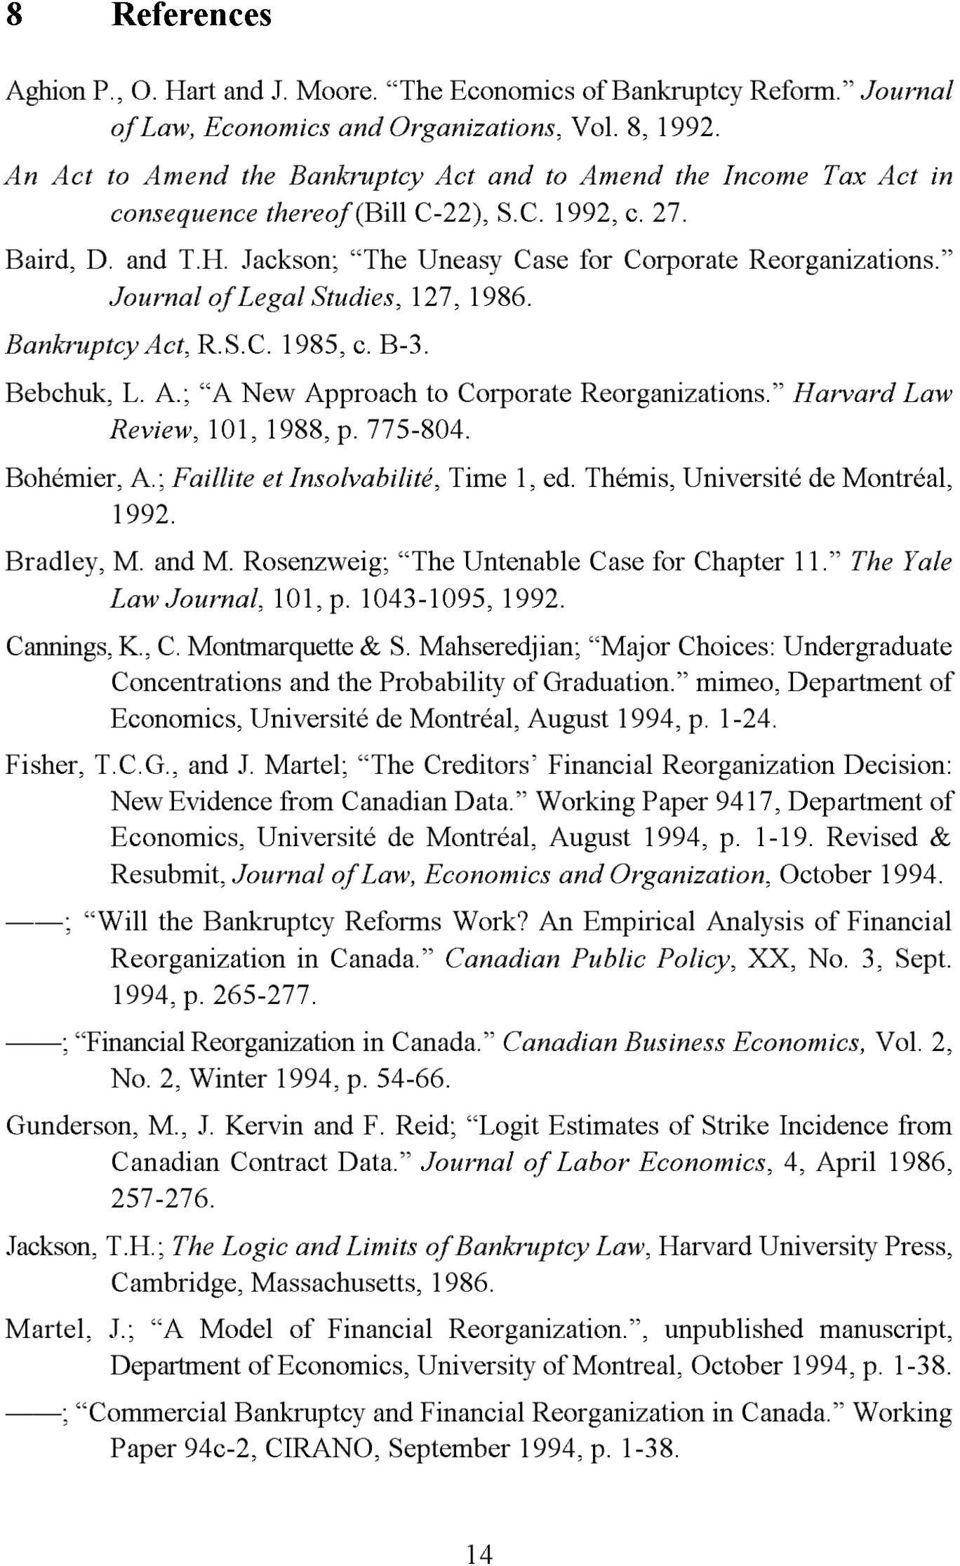 Journal of Legal Studies, 127, 1986. Bankruptcy Act, R.S.C. 1985, c. B-3. Bebchuk, L. A.; A New Approach to Corporate Reorganizations. Harvard Law Review, 101, 1988, p. 775-804. Bohémier, A.